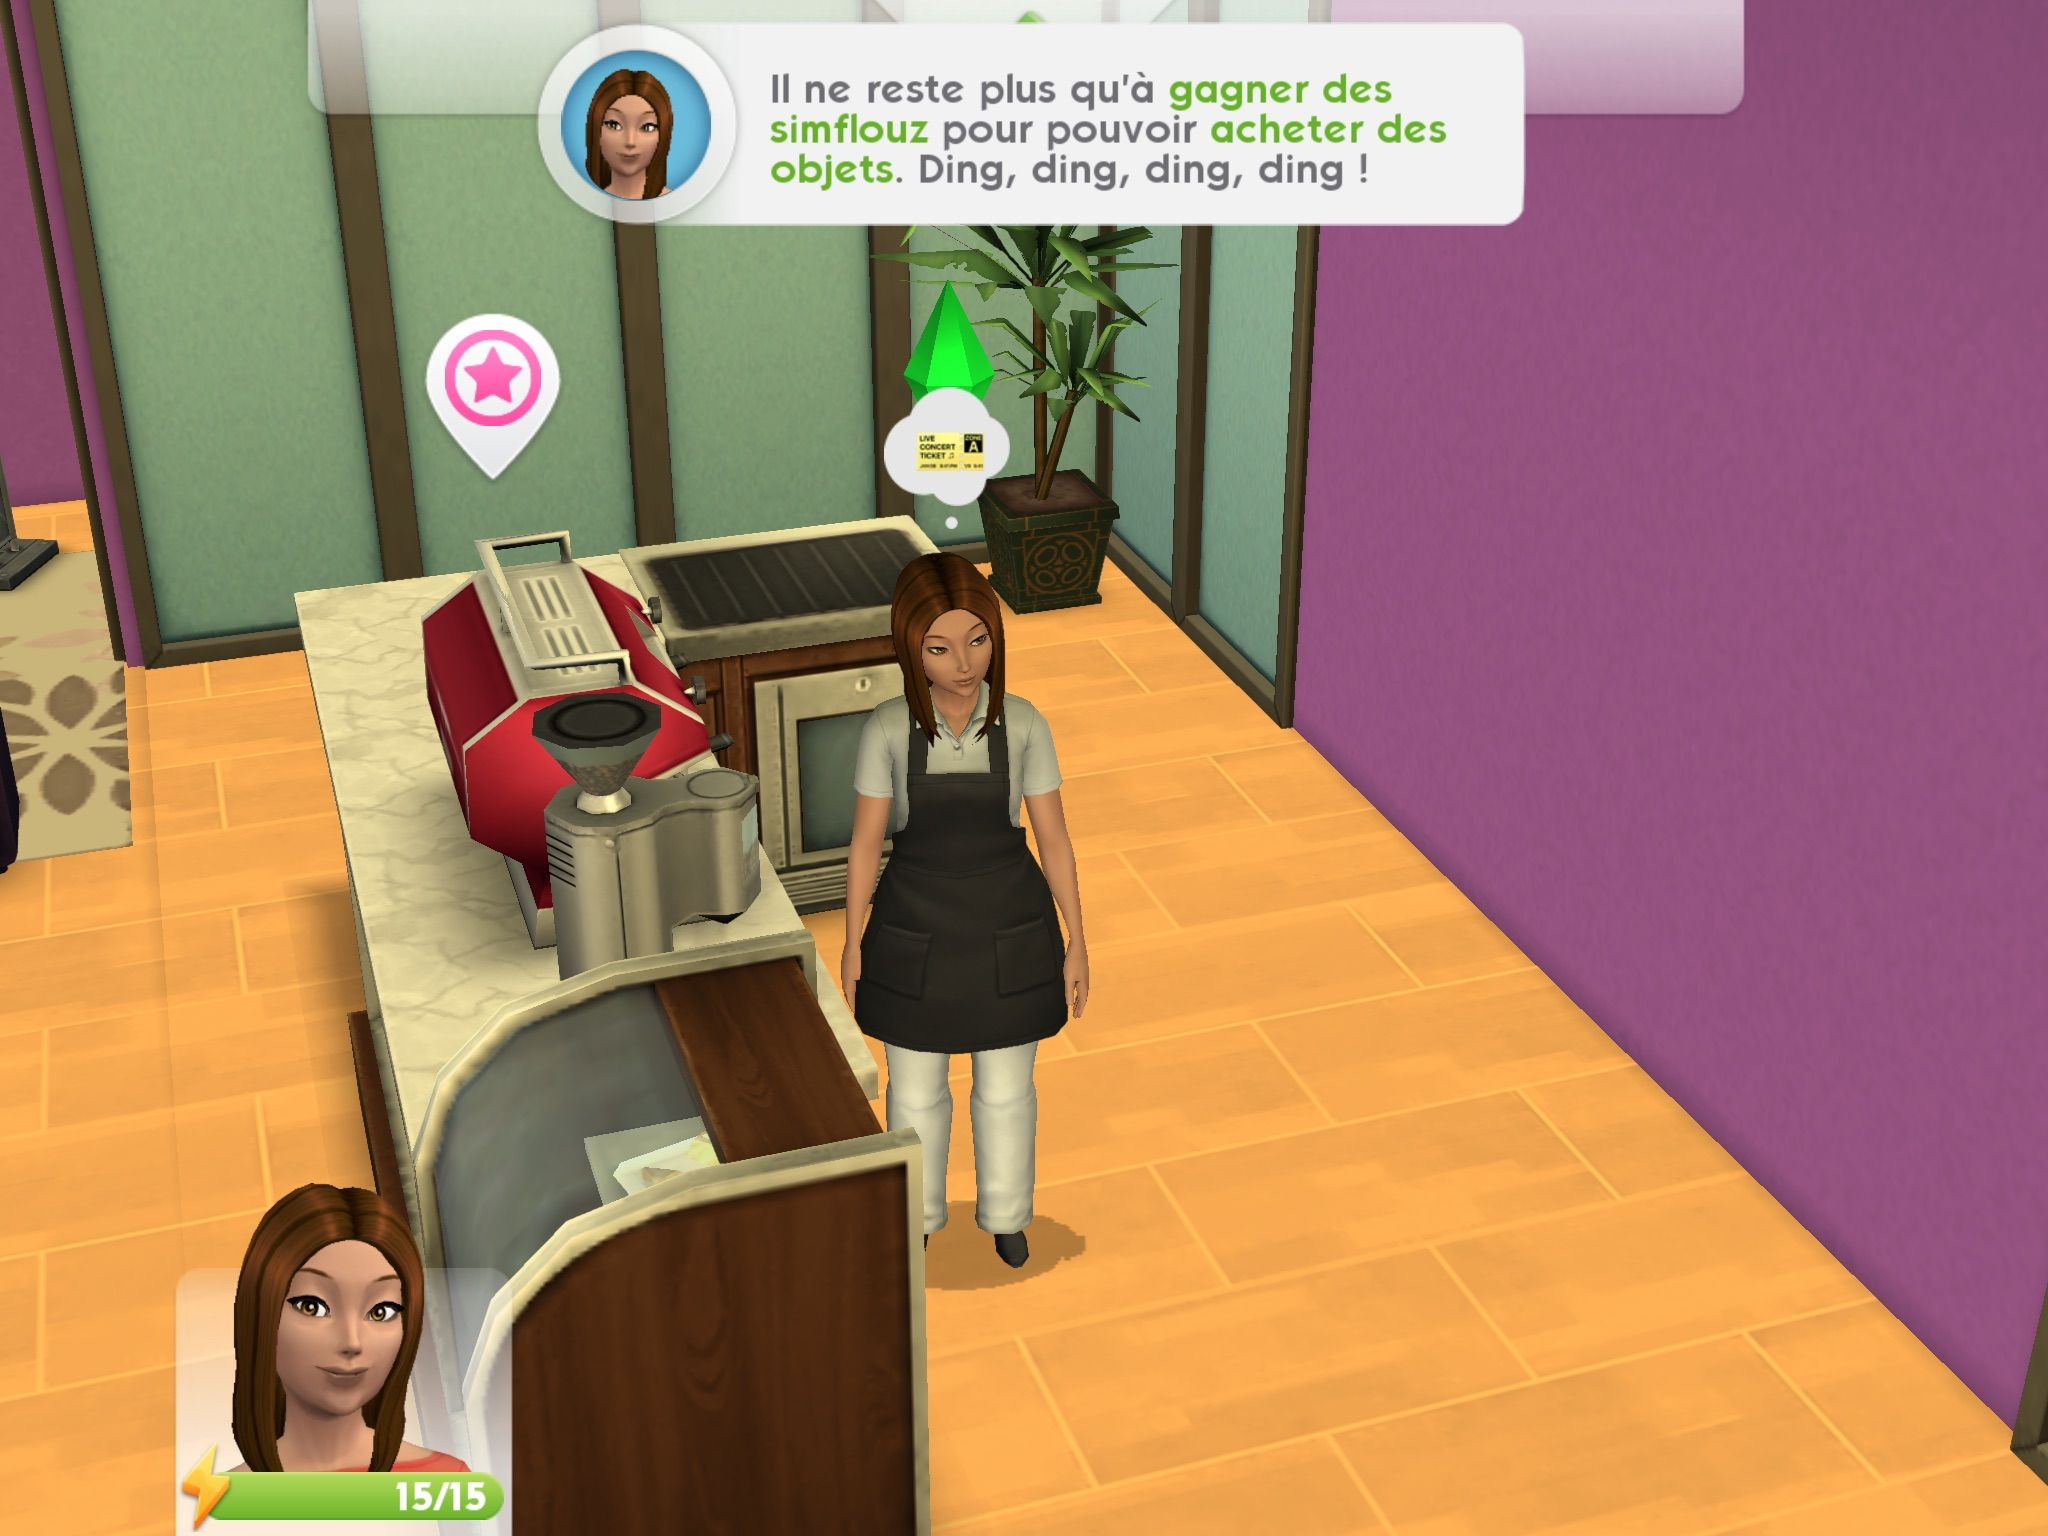 Les sims mobile guide